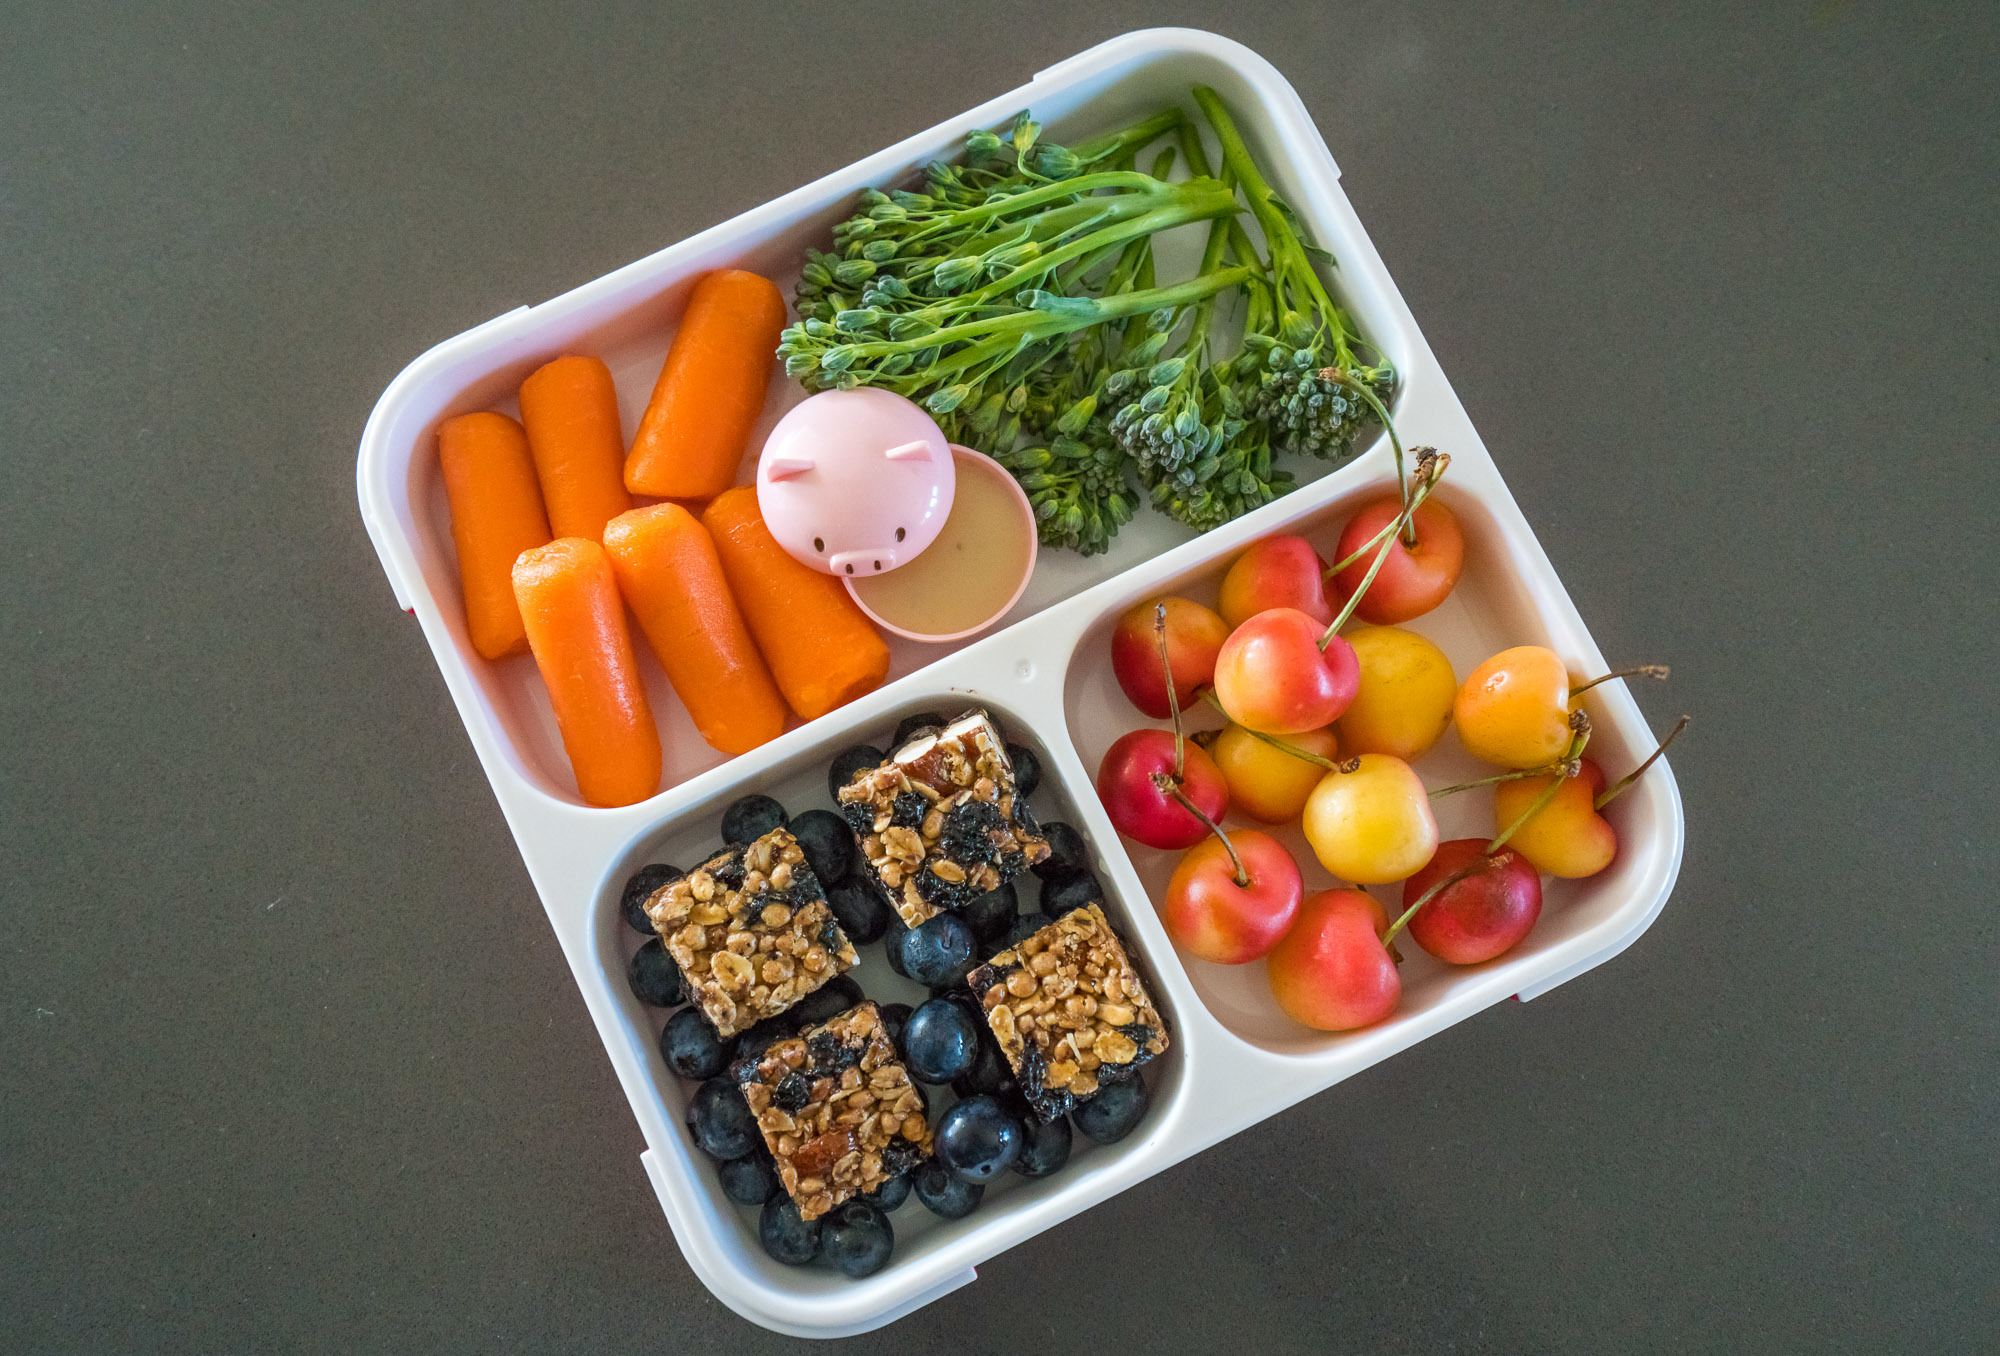 Portioning snacks and meals is part of a mindful snacking routine.